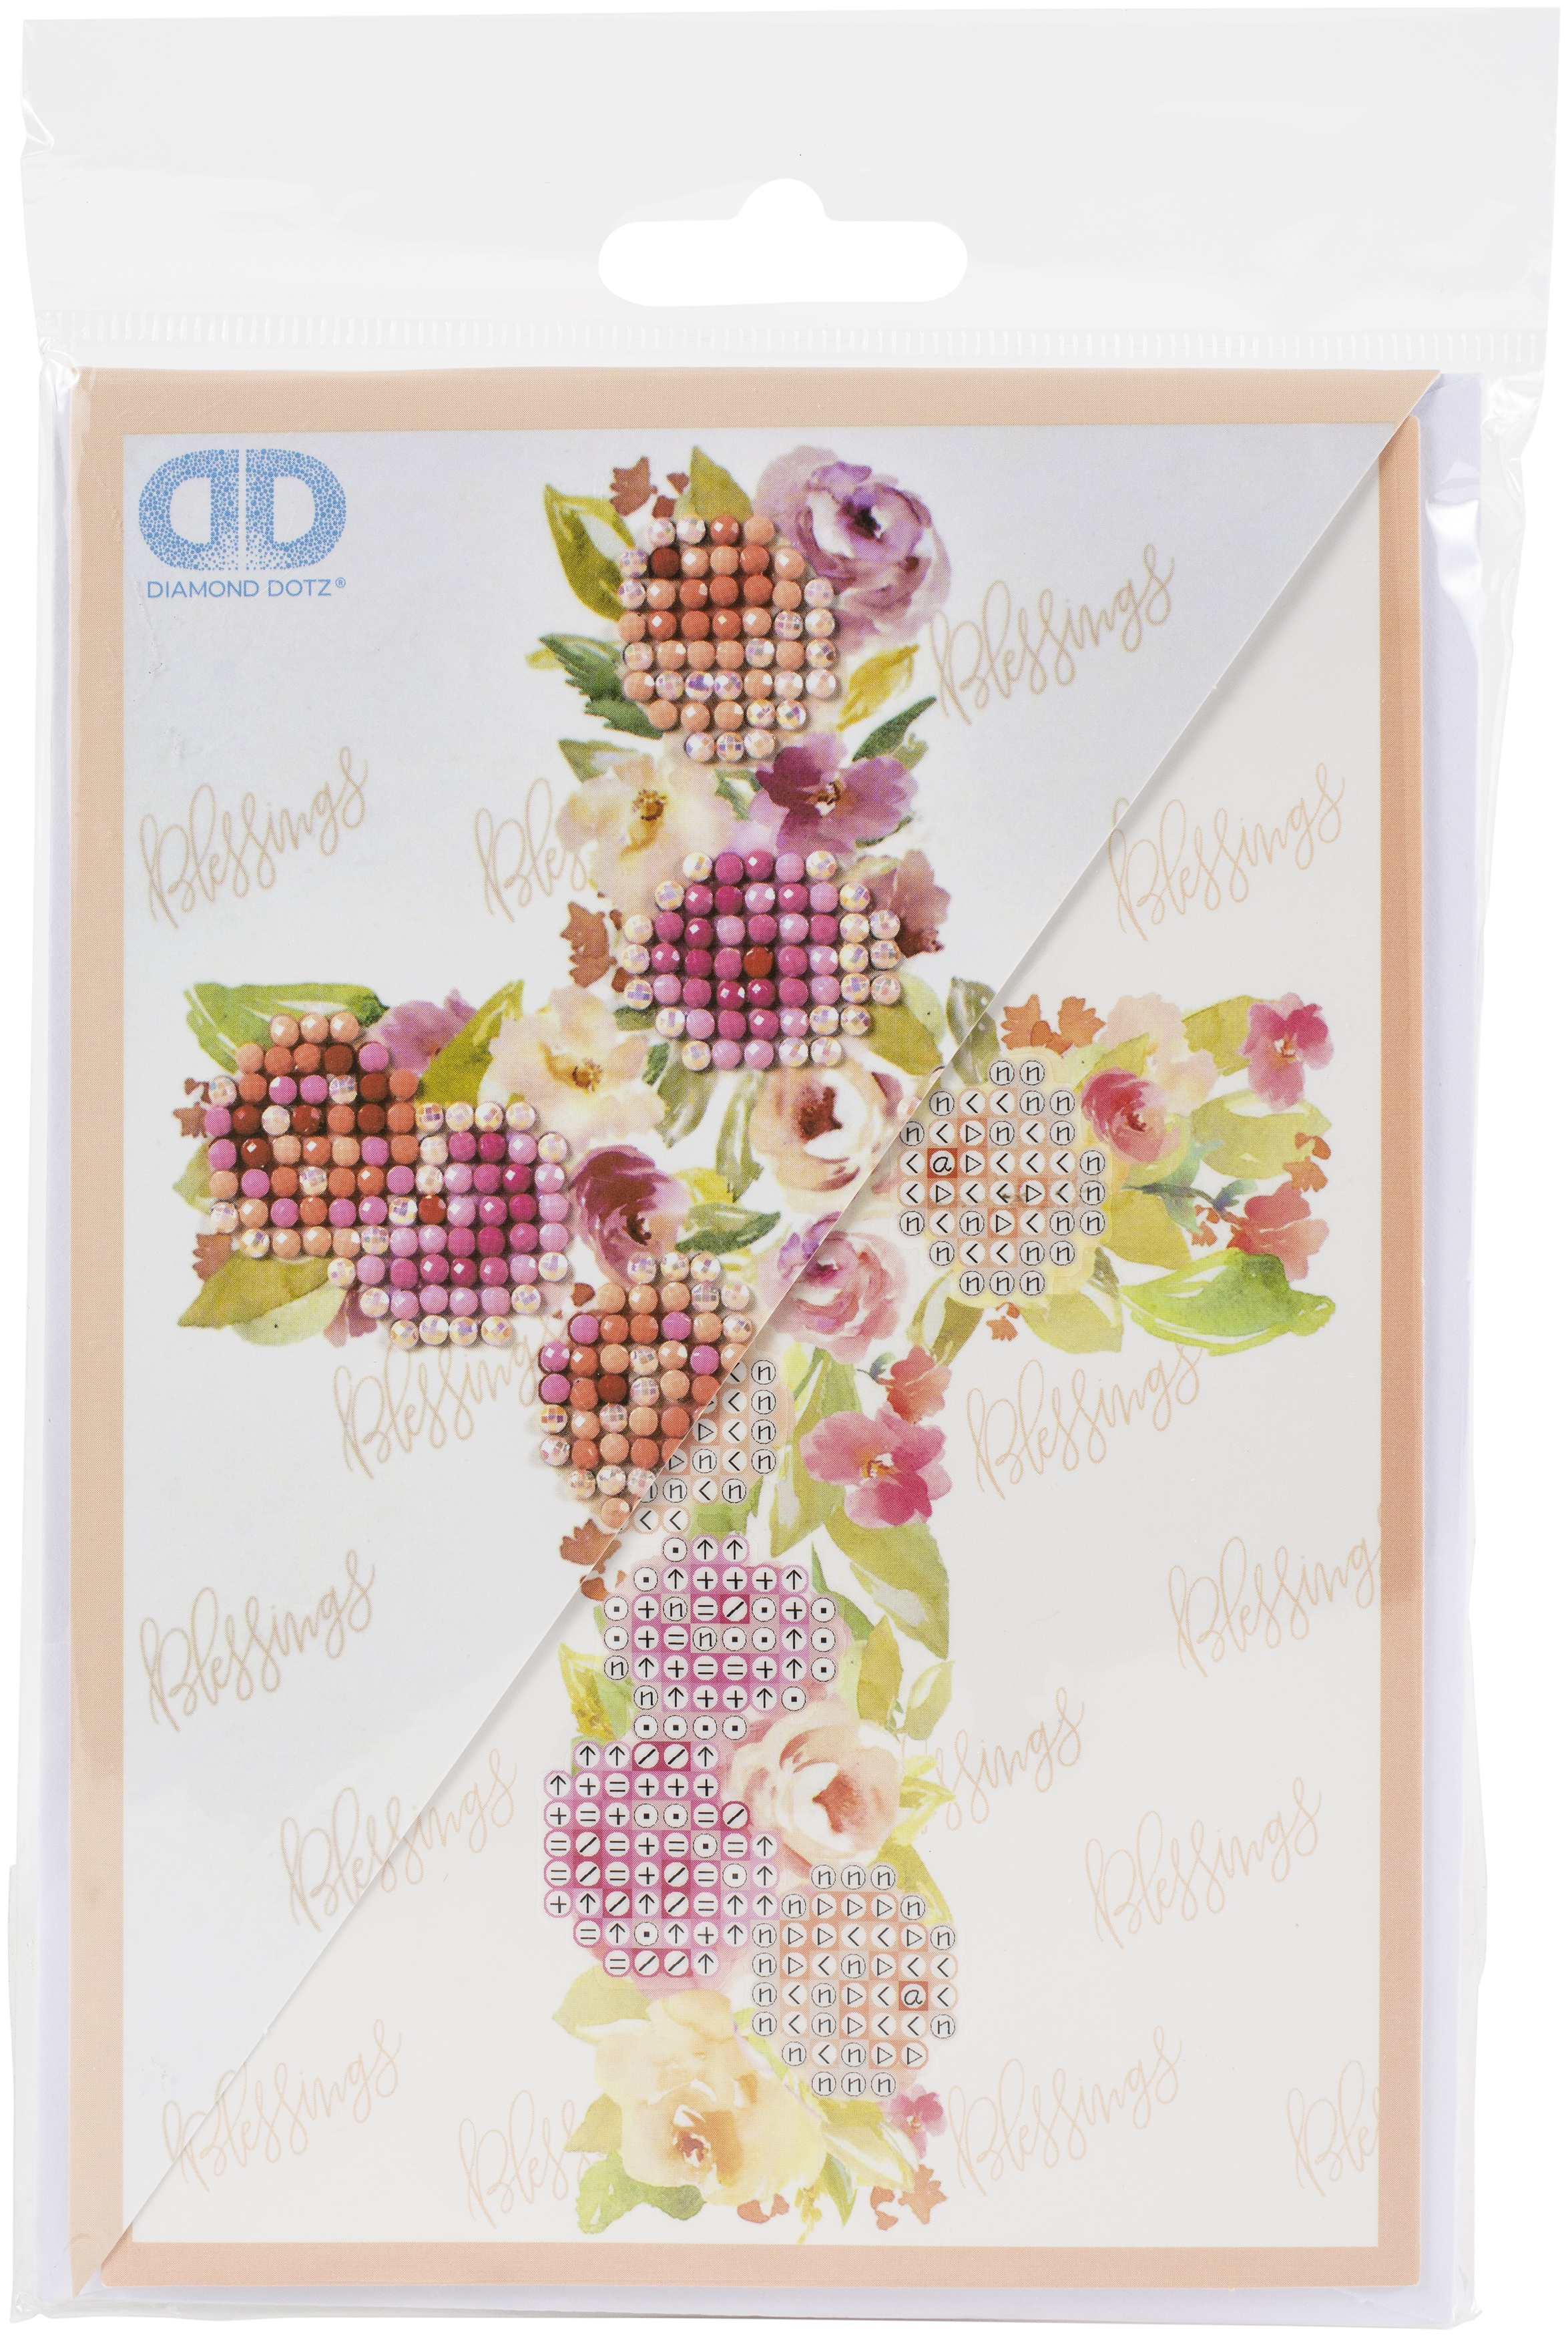 Diamond Dotz Diamond Embroidery Facet Art Greeting Card Kit-Blessings